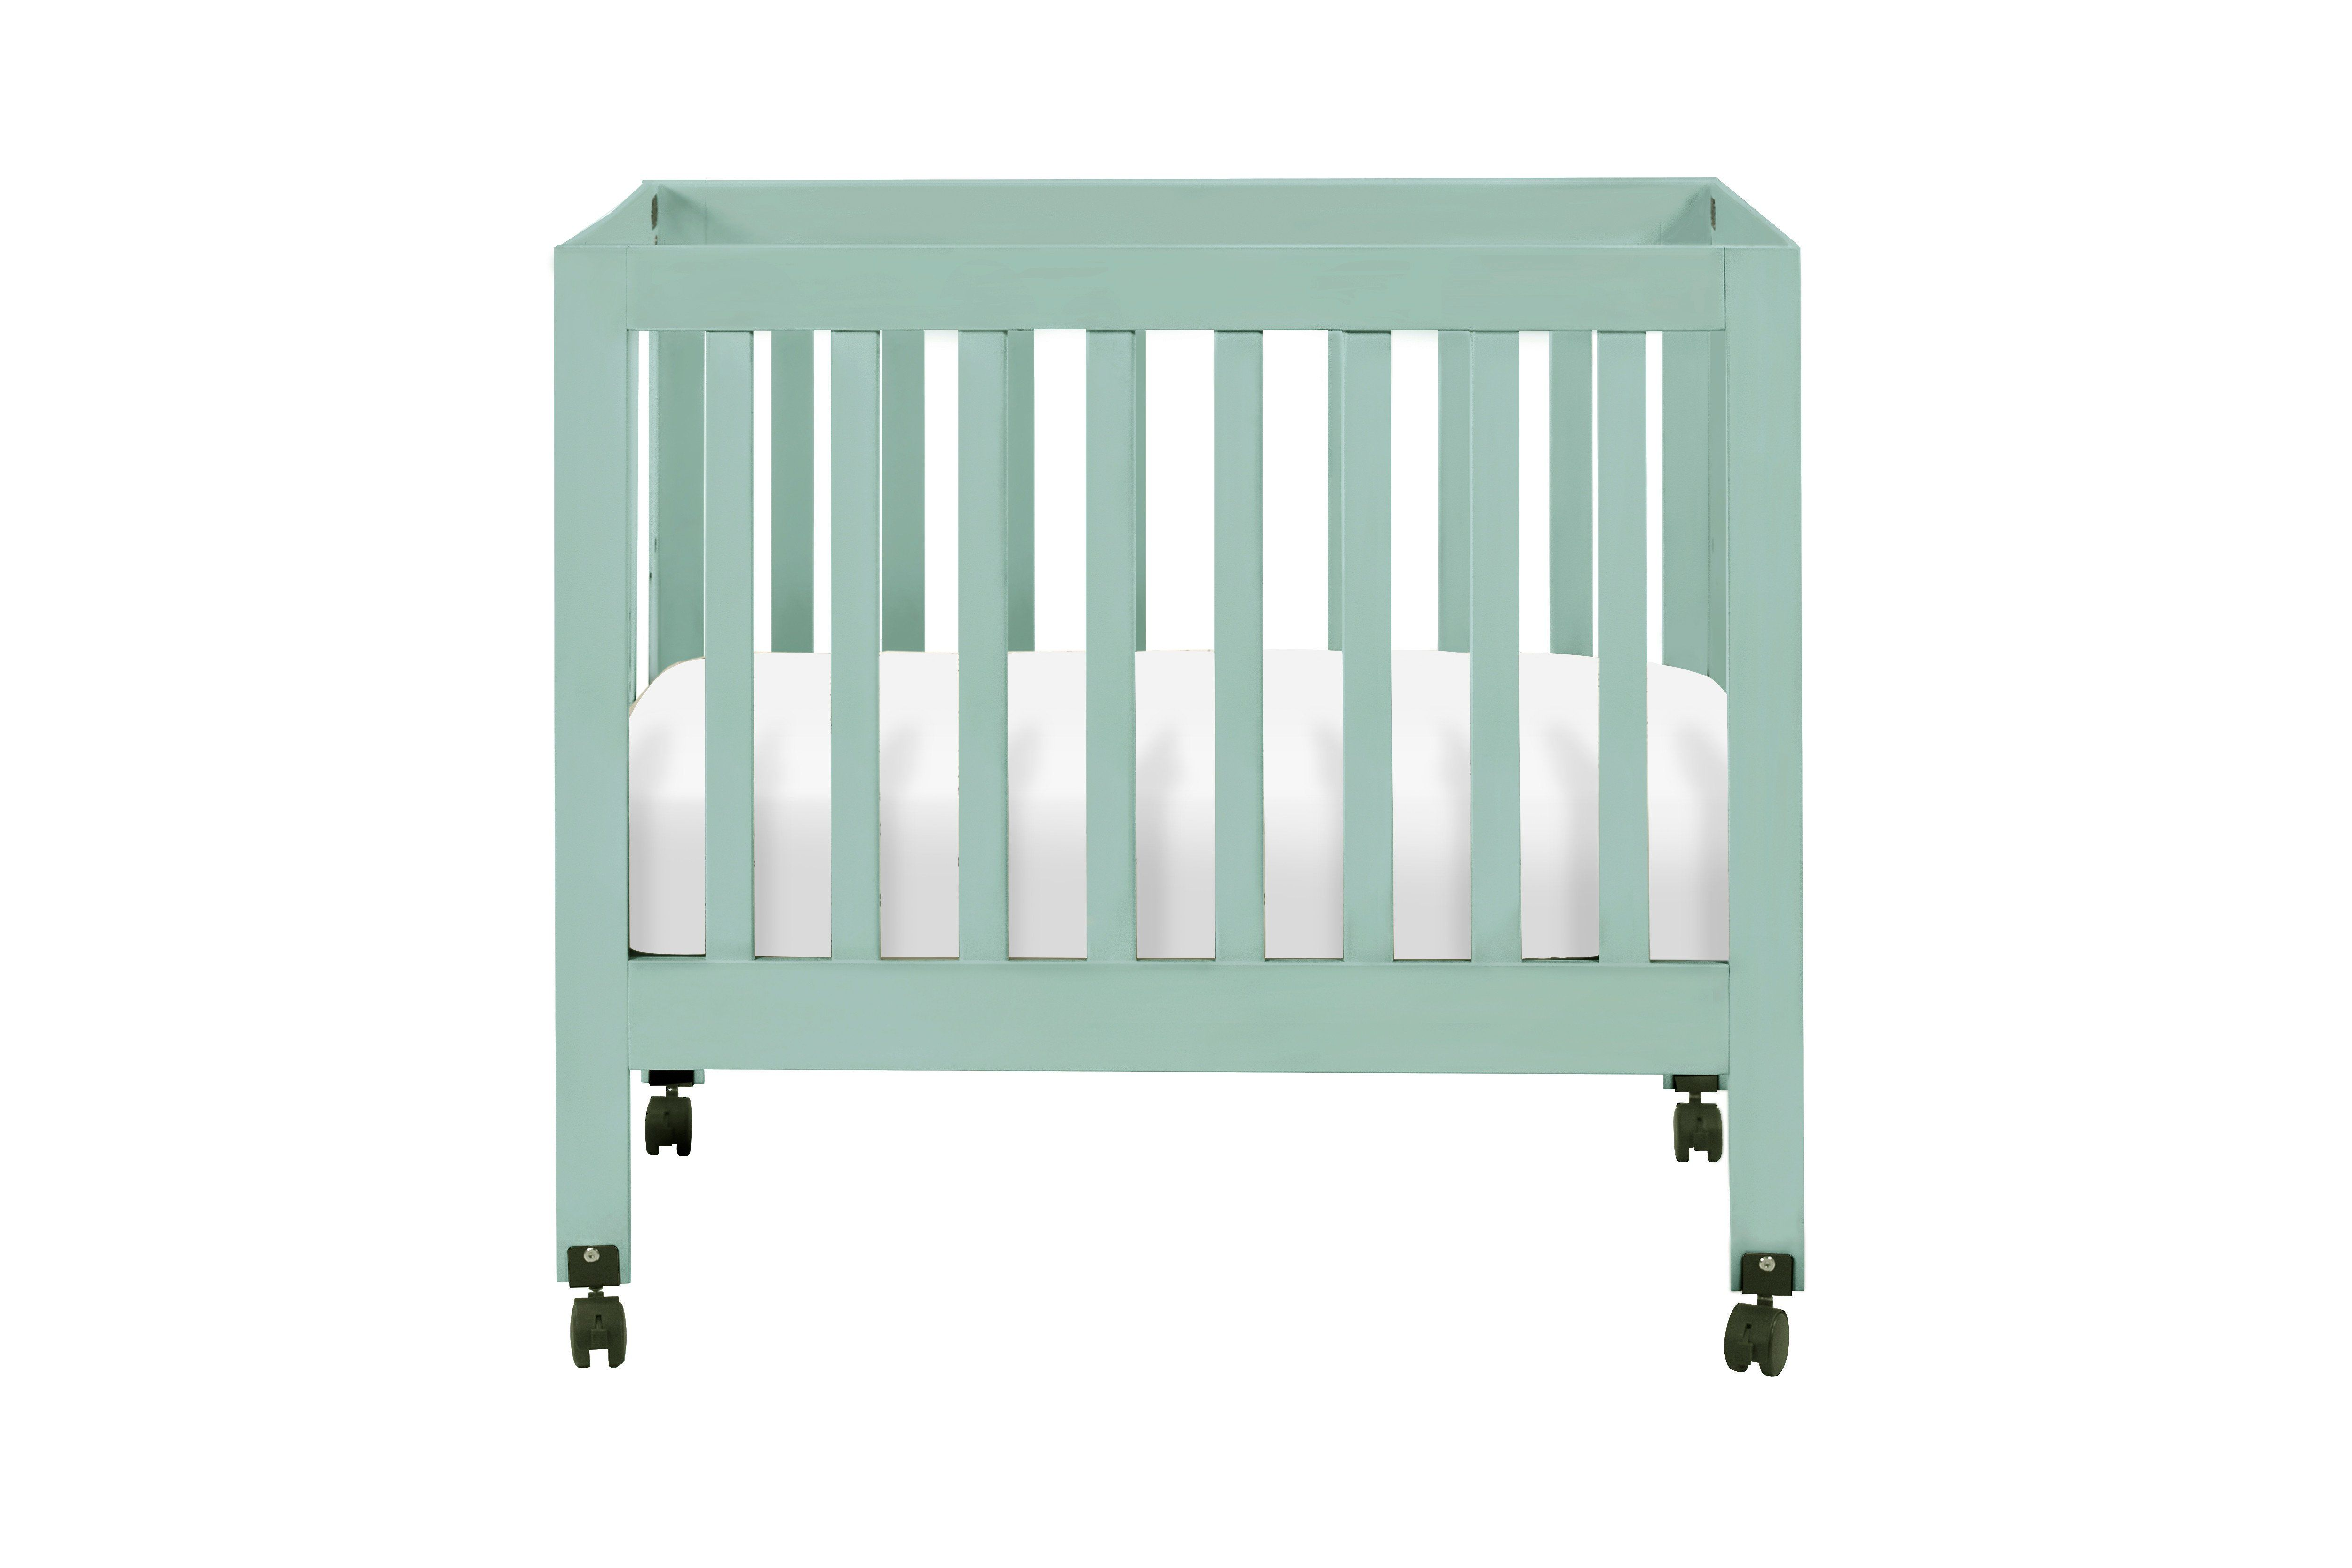 biltmore cribs how cot bed cheap sniglar phil compact foundations sunbury good dimensions spaces babyletto and long is travel white bedroom bloom reviews limit mini age with origami for baby mattress furniture sundvik walmart teds crib ikea small